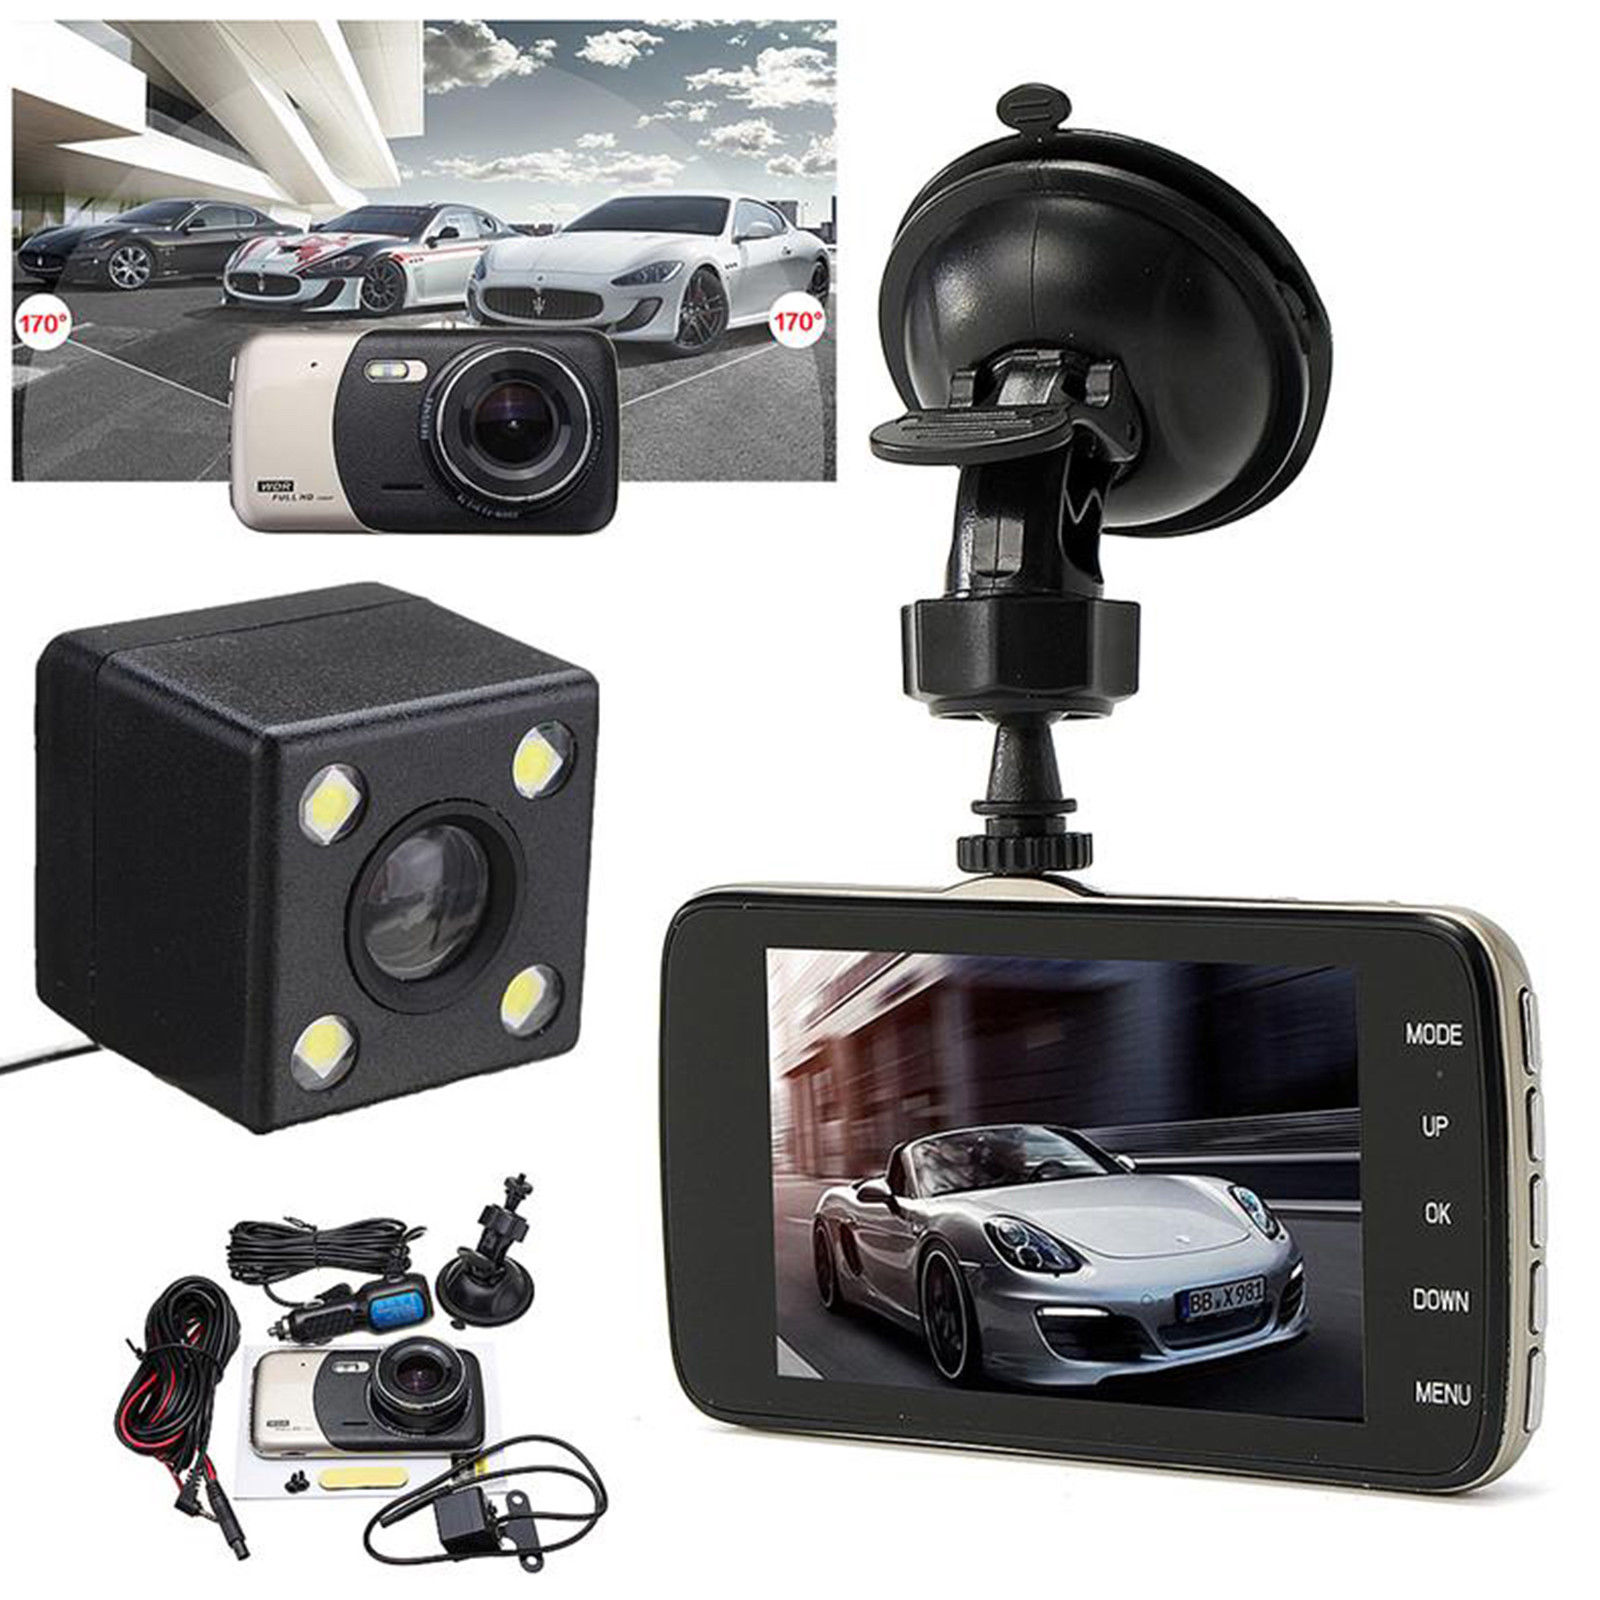 4 0 inch Dash Cam HD 140 Degree Wide Angle Night Vision Auto Rearview Video Recorder Dual Lens Double Recording Car DVR 5 in DVR Dash Camera from Automobiles Motorcycles